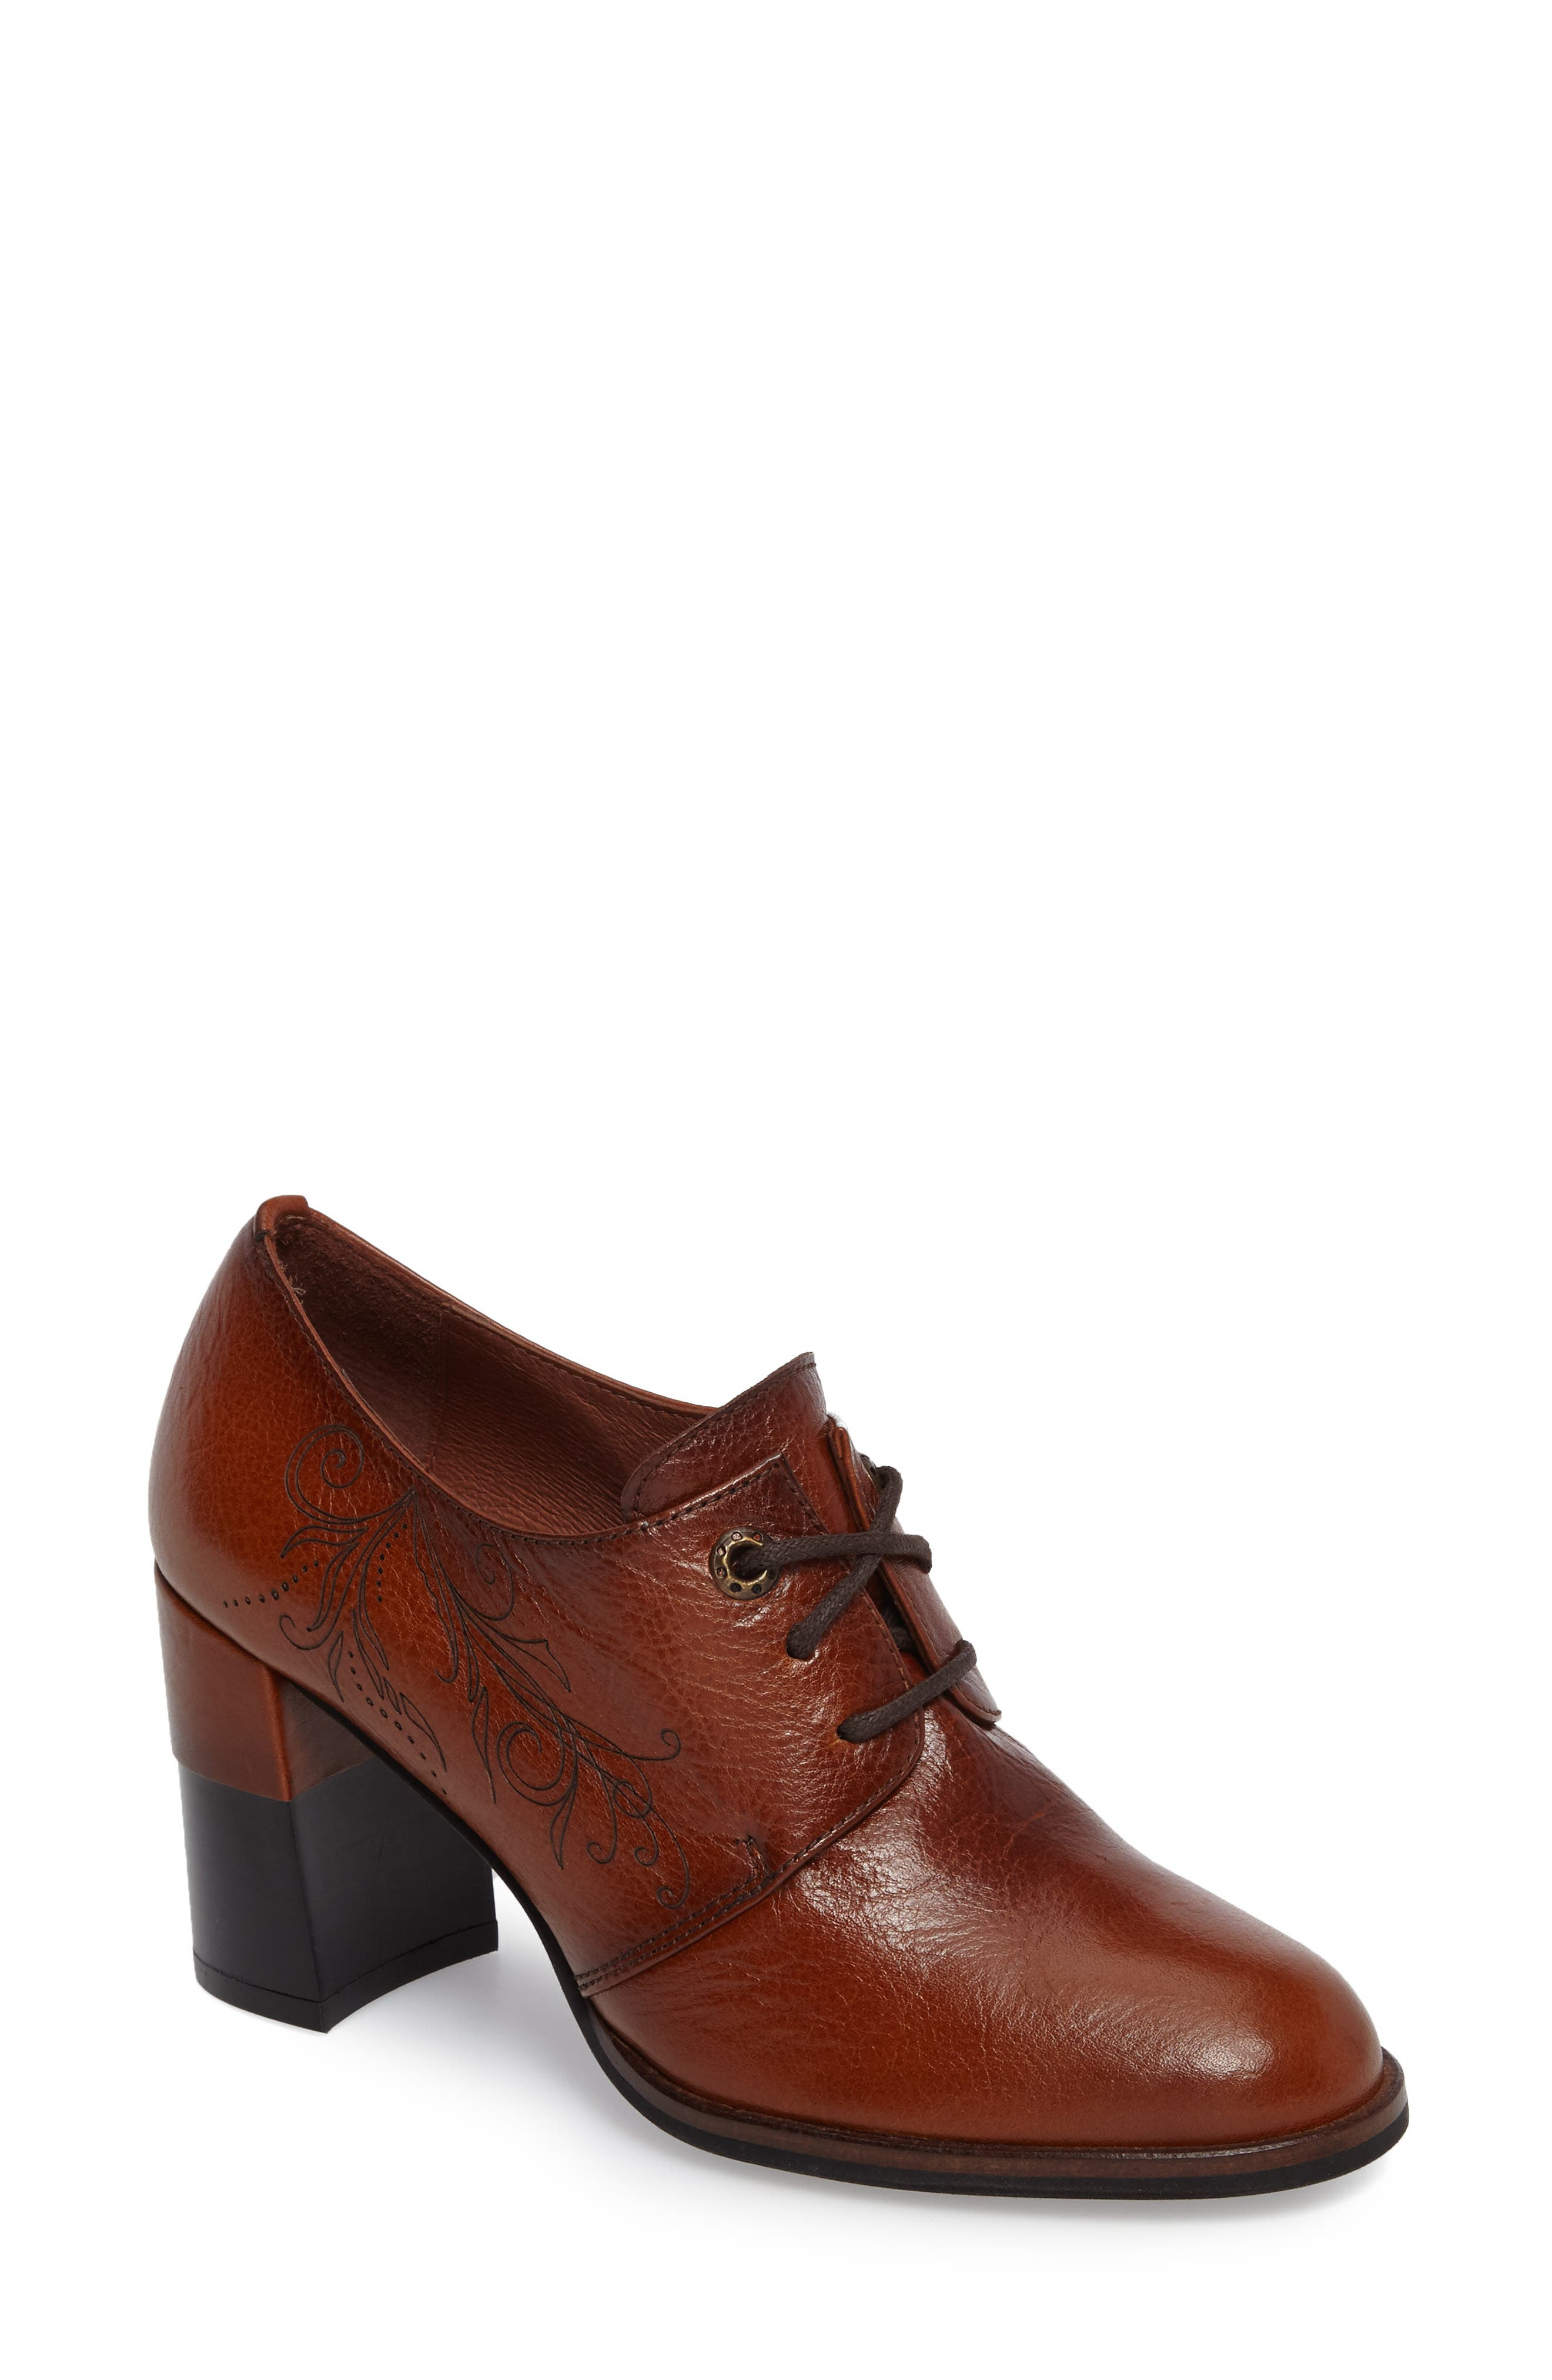 Hayes Lace-Up Pump,                         Main,                         color, CUOIO LEATHER